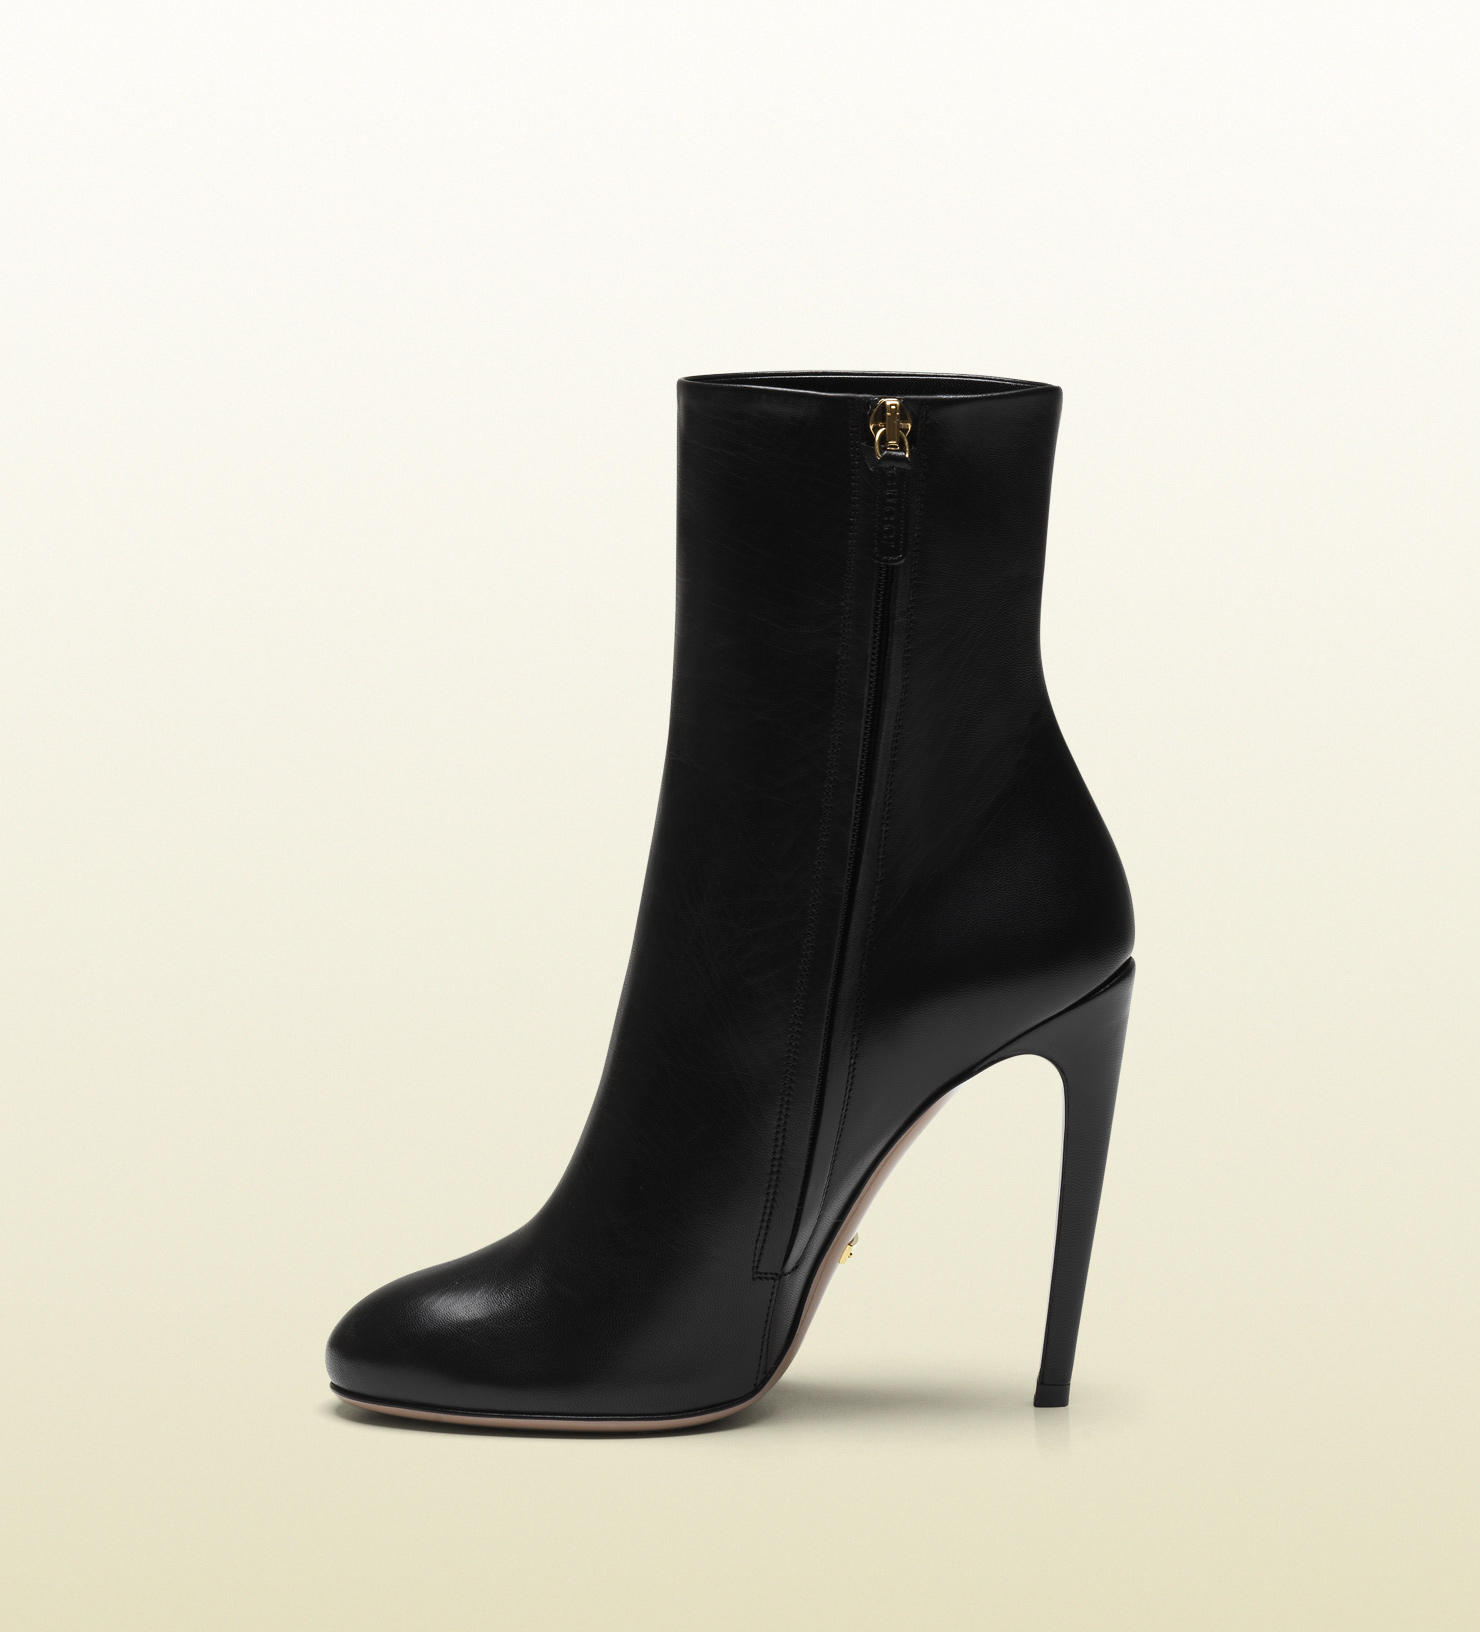 1a3d7387d59 Lyst - Gucci Goldie Black Leather High Heel Bootie in Black